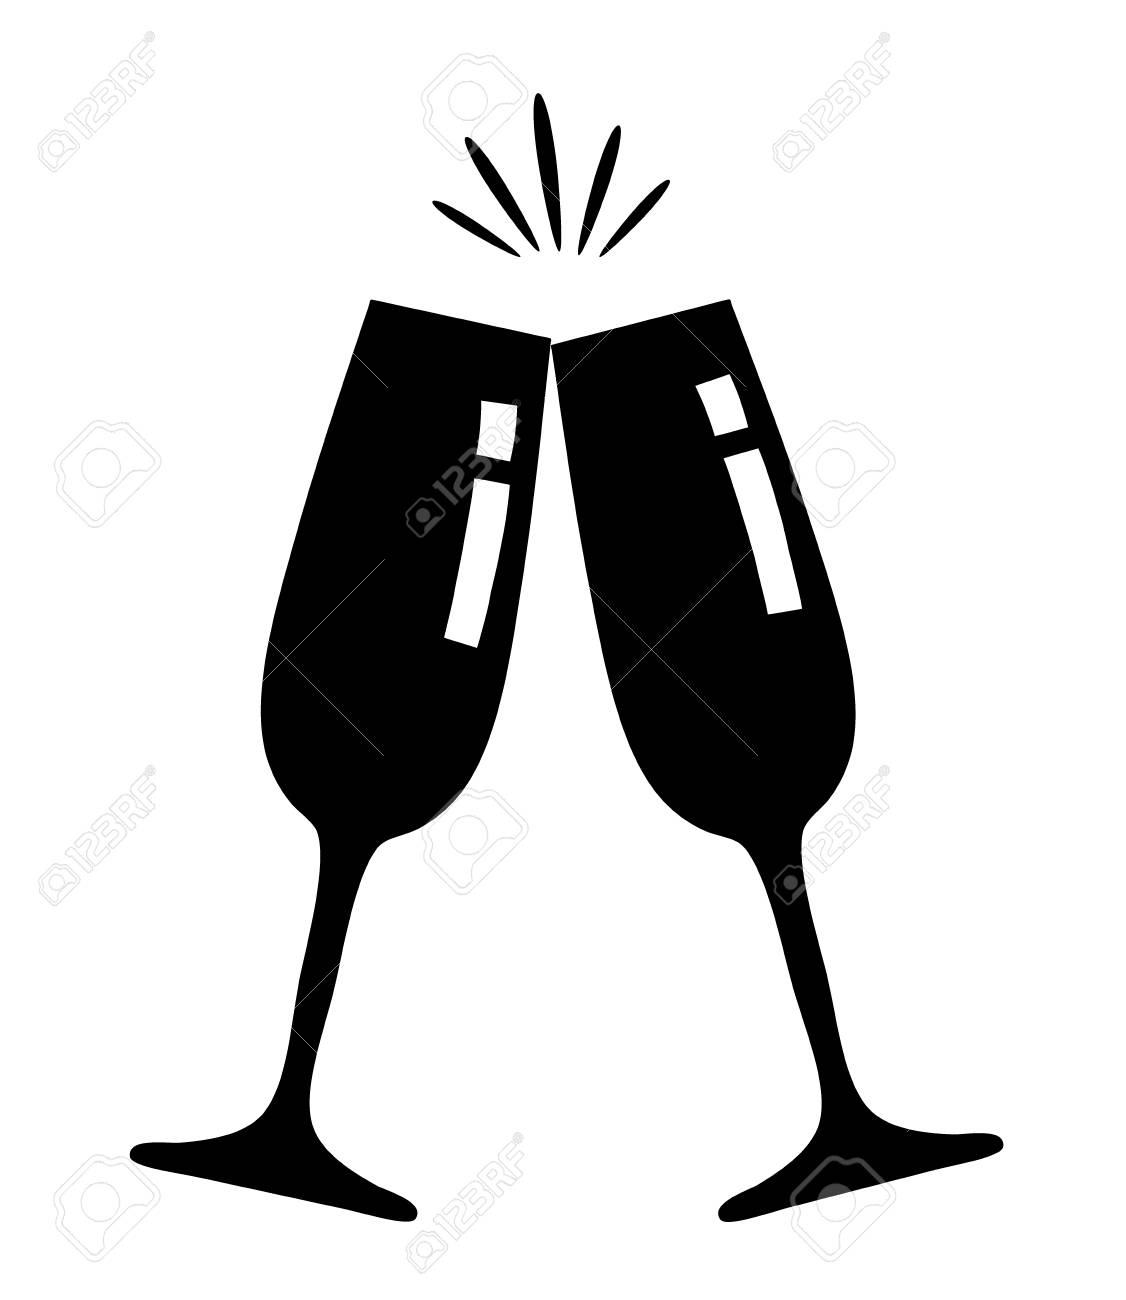 Vector illustration of champagne glasses icon black and white.